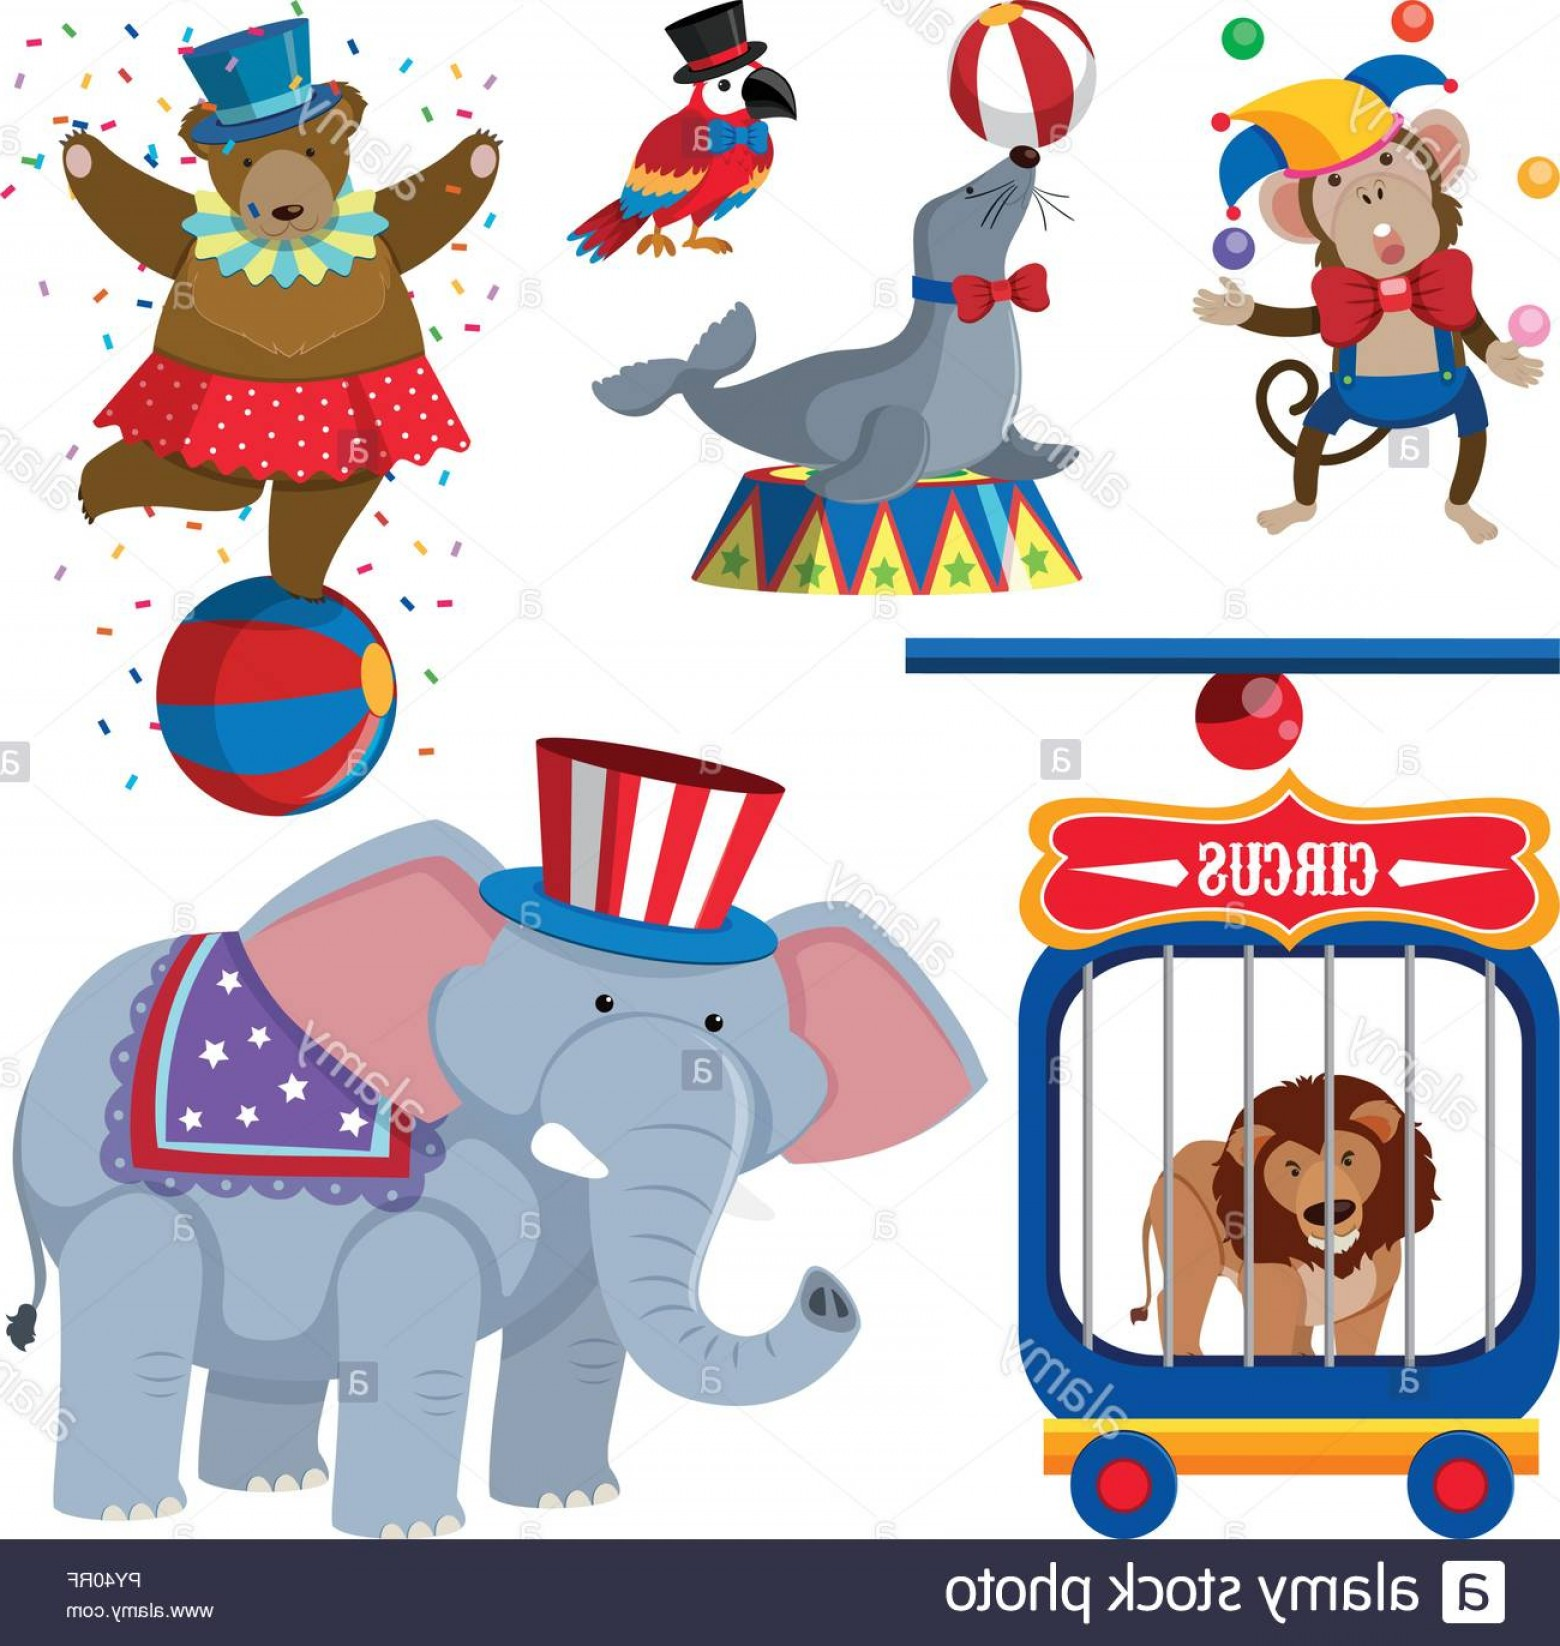 Circus Animals Vector Graphic: A Set Of Circus Animals Illustration Image